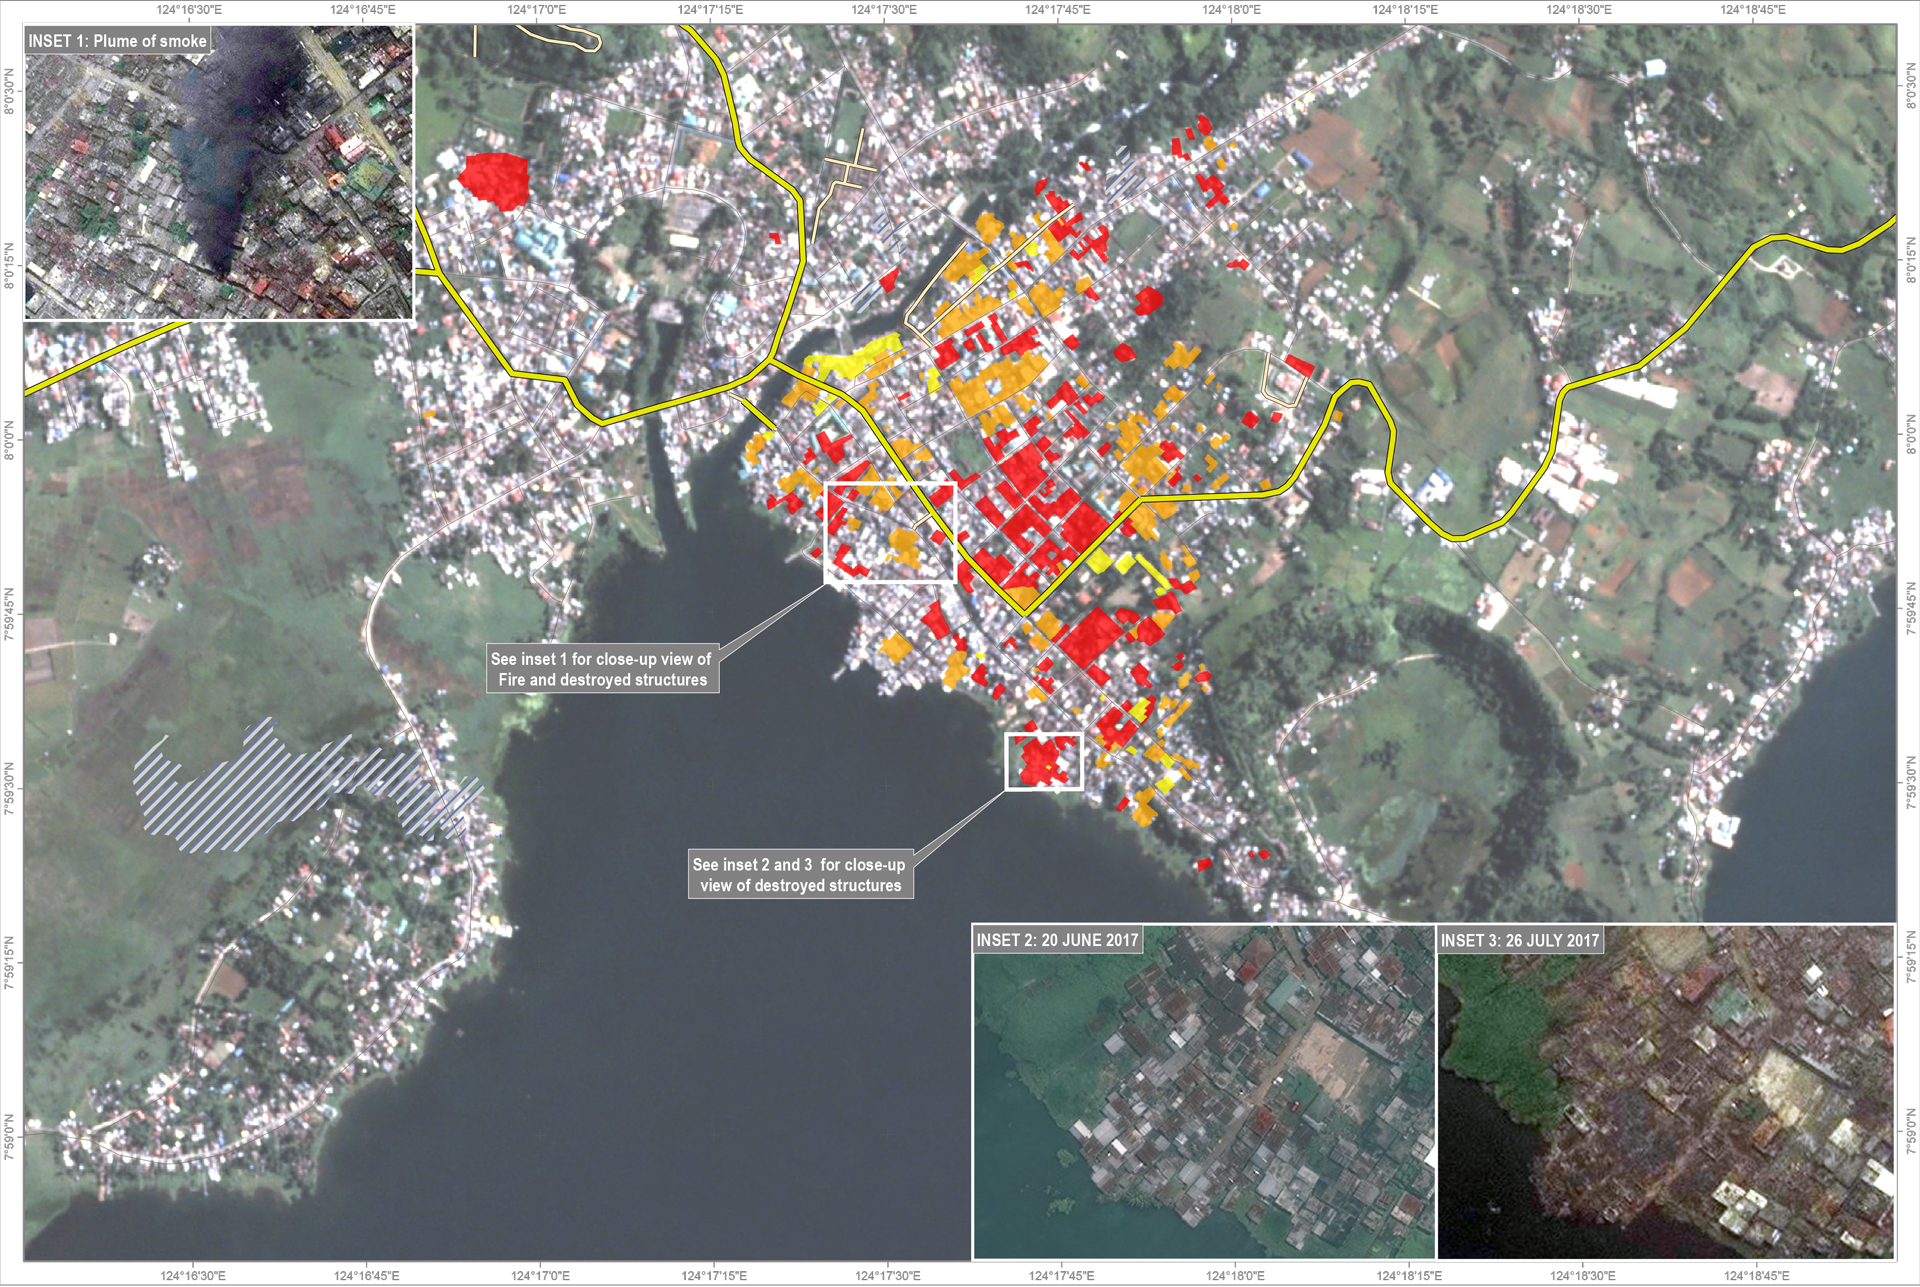 Map of damages in Marawi